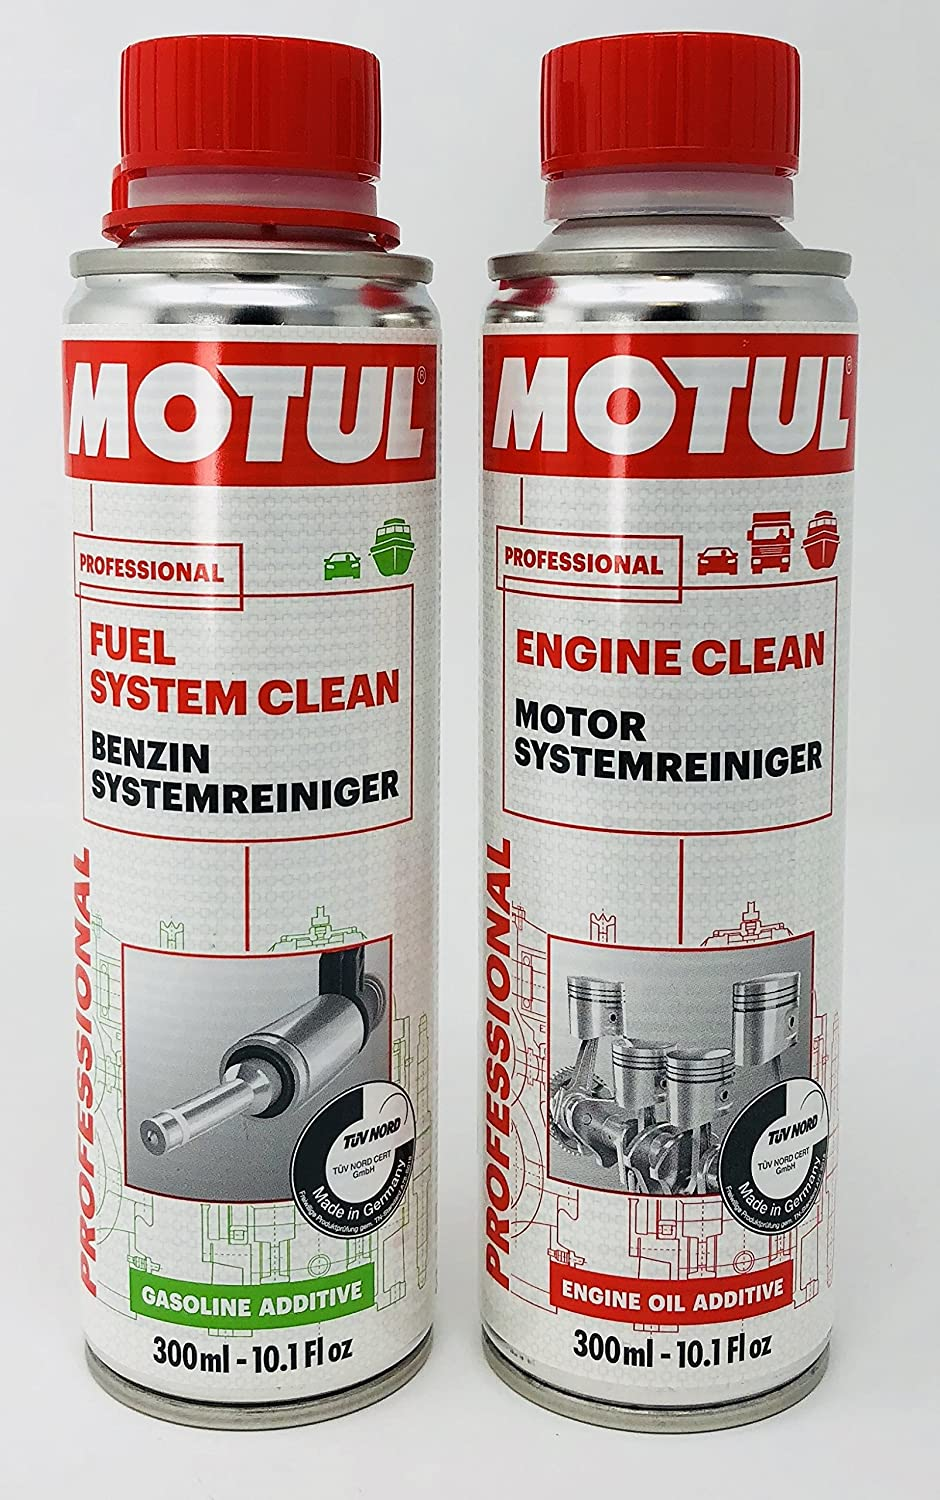 MOTUL DUO Aditivos Professional - Fuel system Clean + Engine Clean Motul 108122 108119